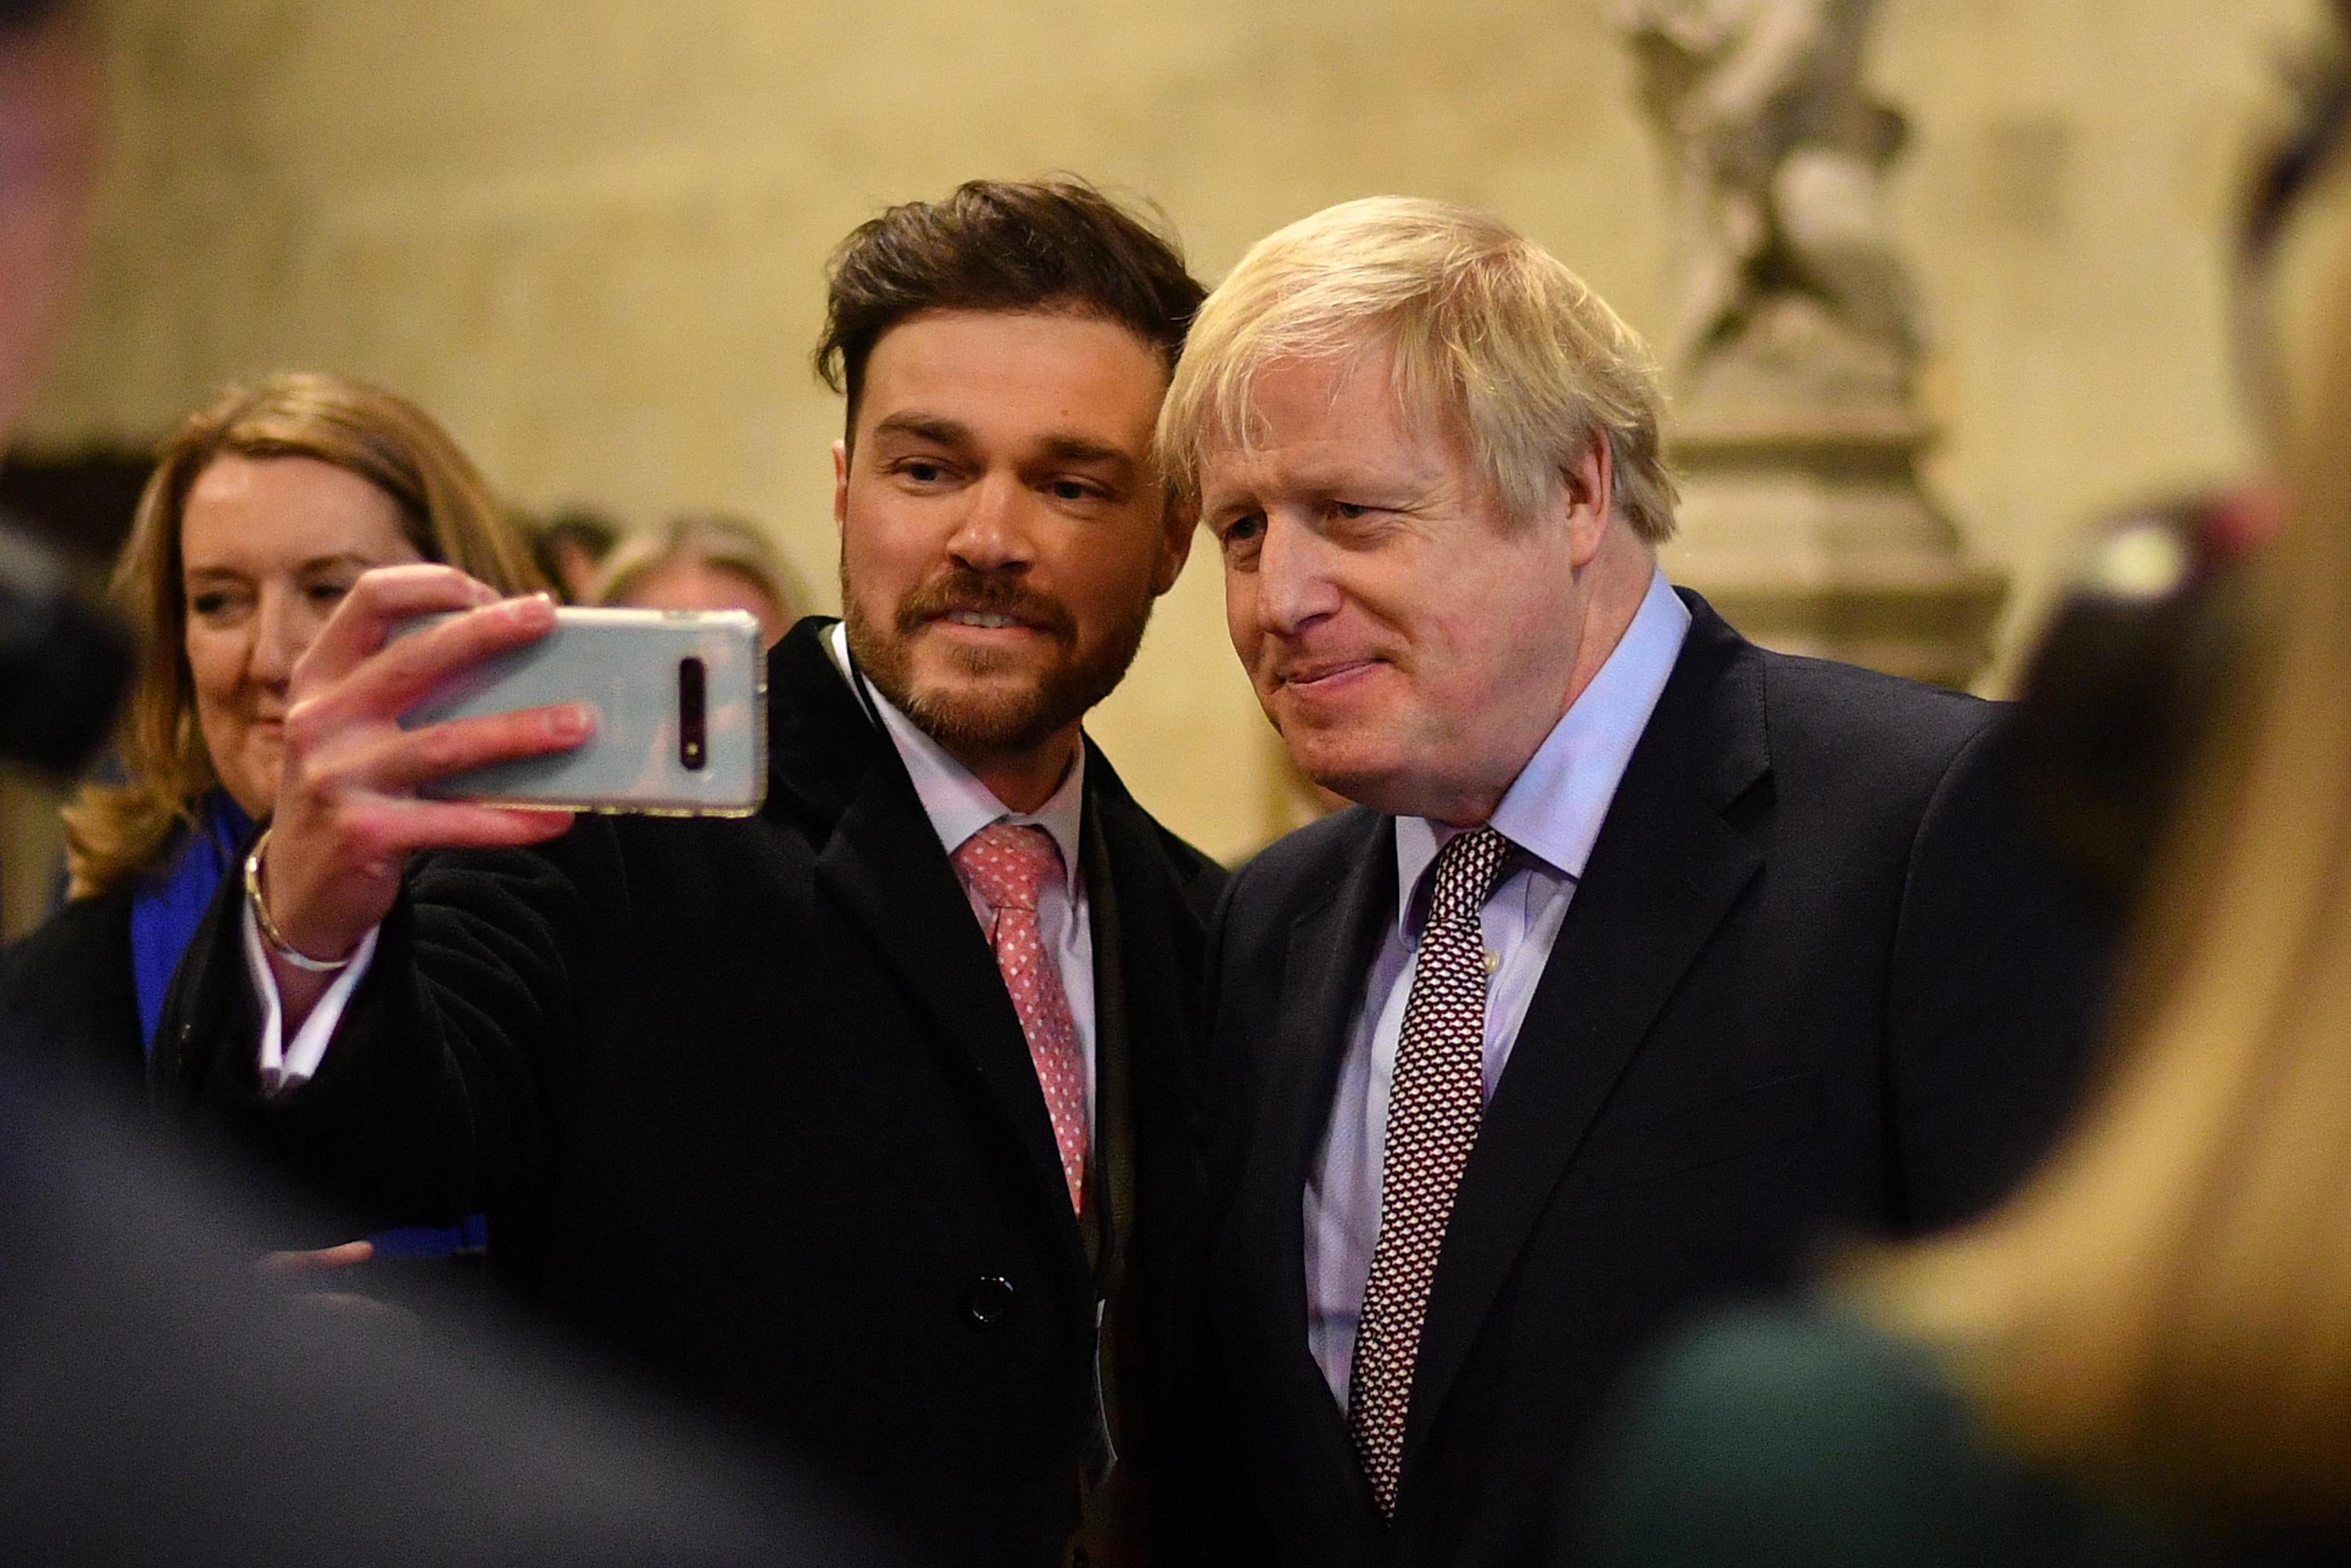 Prime Minister Boris Johnson poses for photographs as he welcomes the newly elected Conservative MPs at the Houses of Parliament in Westminster, London, after the party gained an 80-seat majority in the General Election.